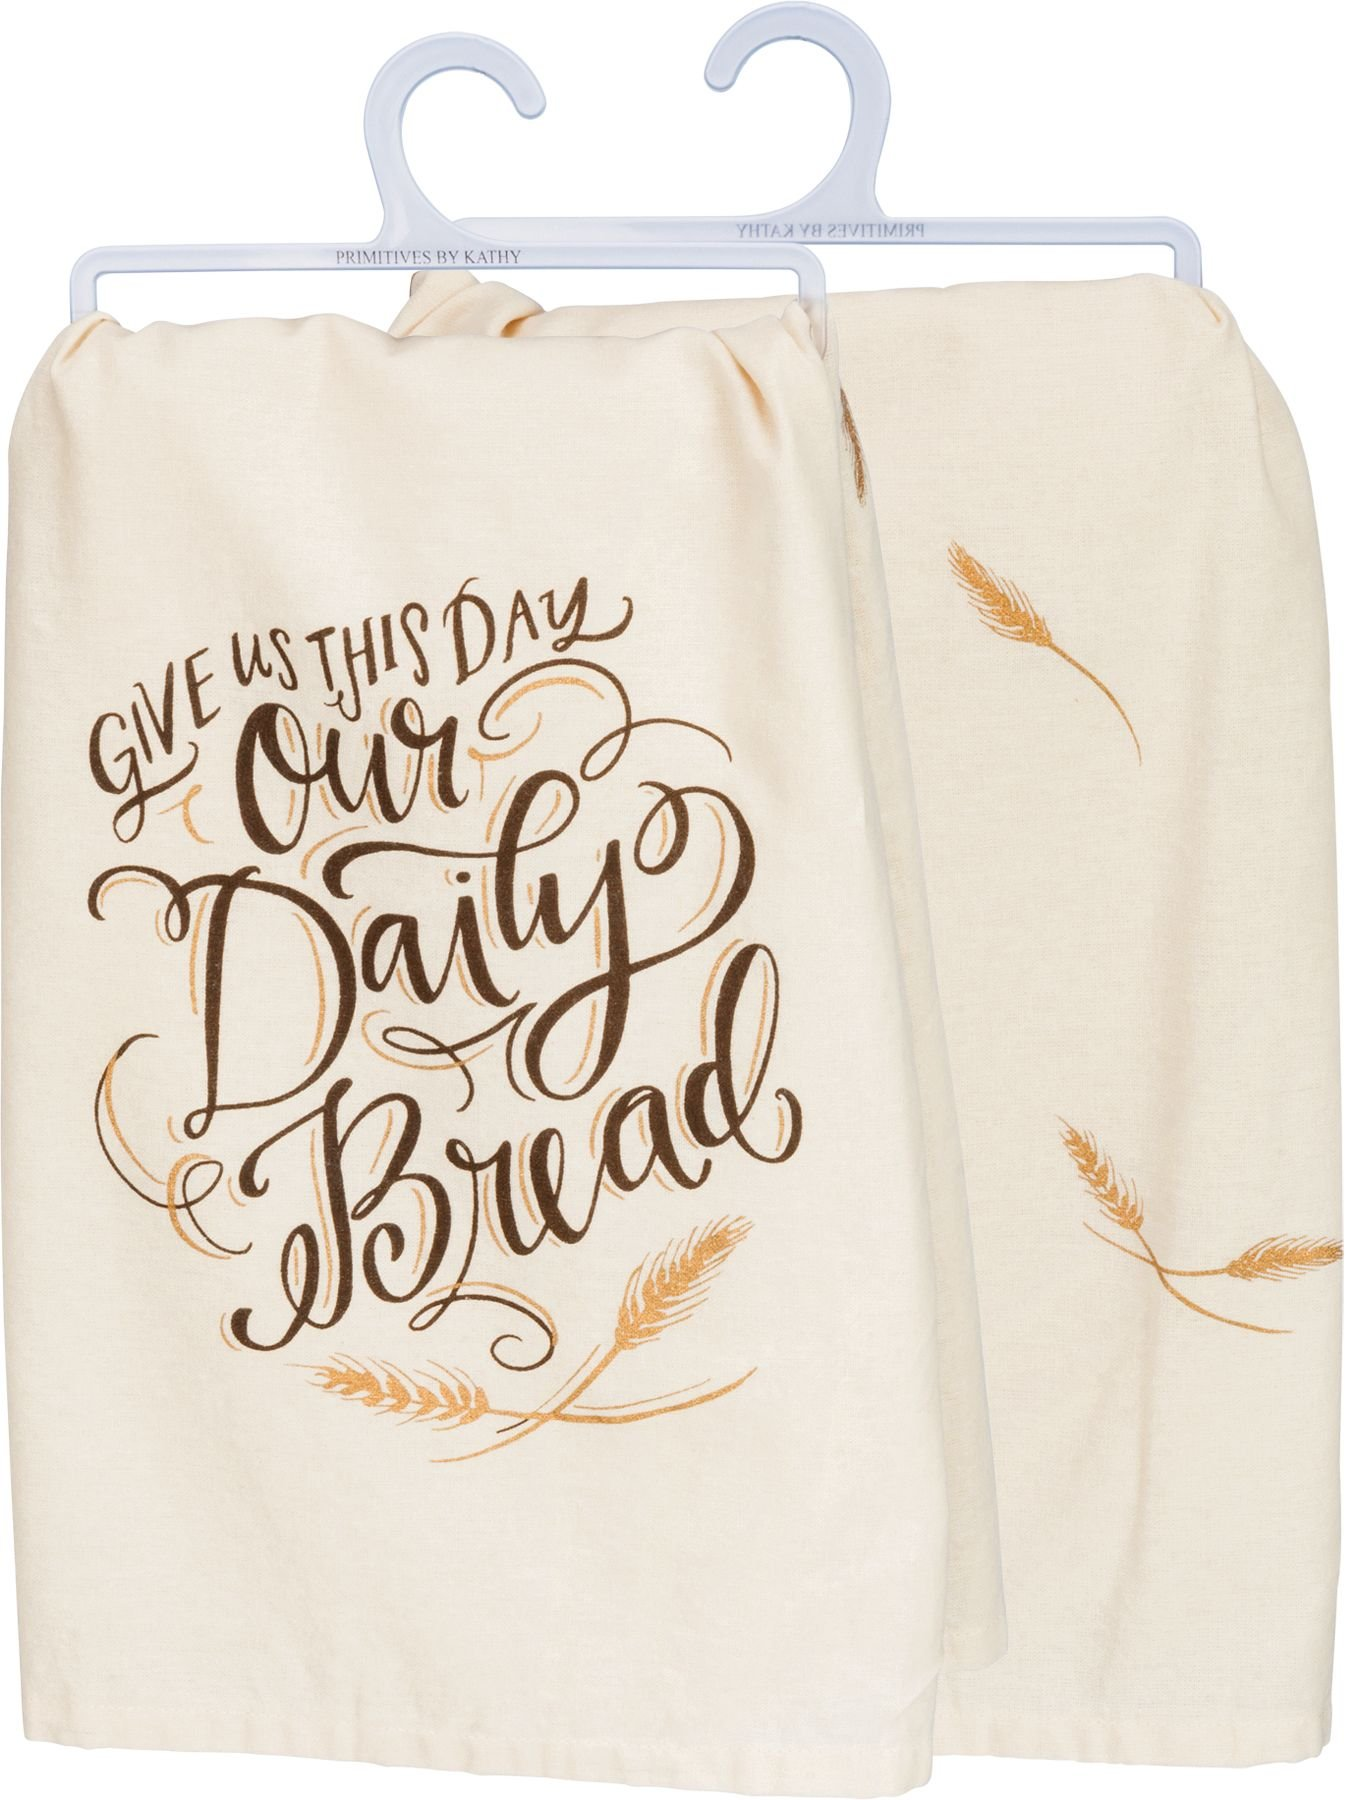 Primitives by Kathy Our Daily Bread Dish Towel